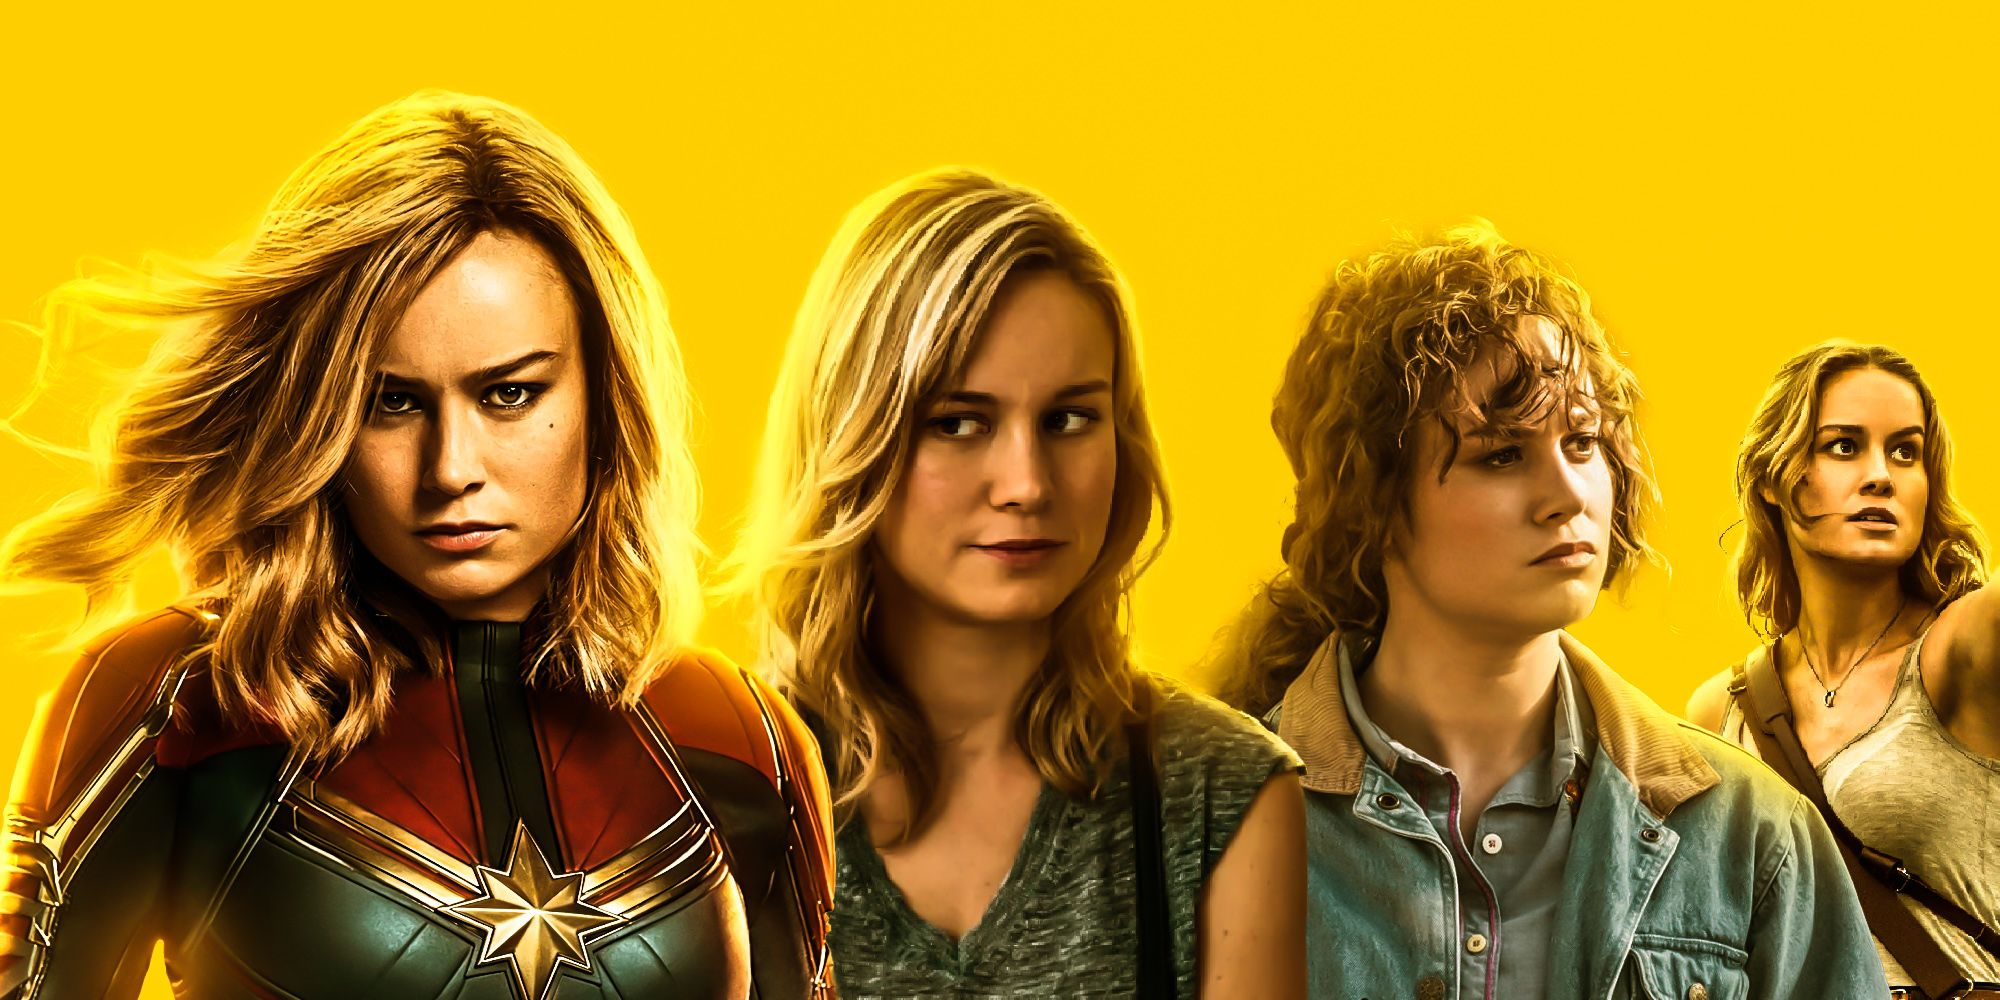 Every Brie Larson Movie Ranked Worst To Best | Screen Rant